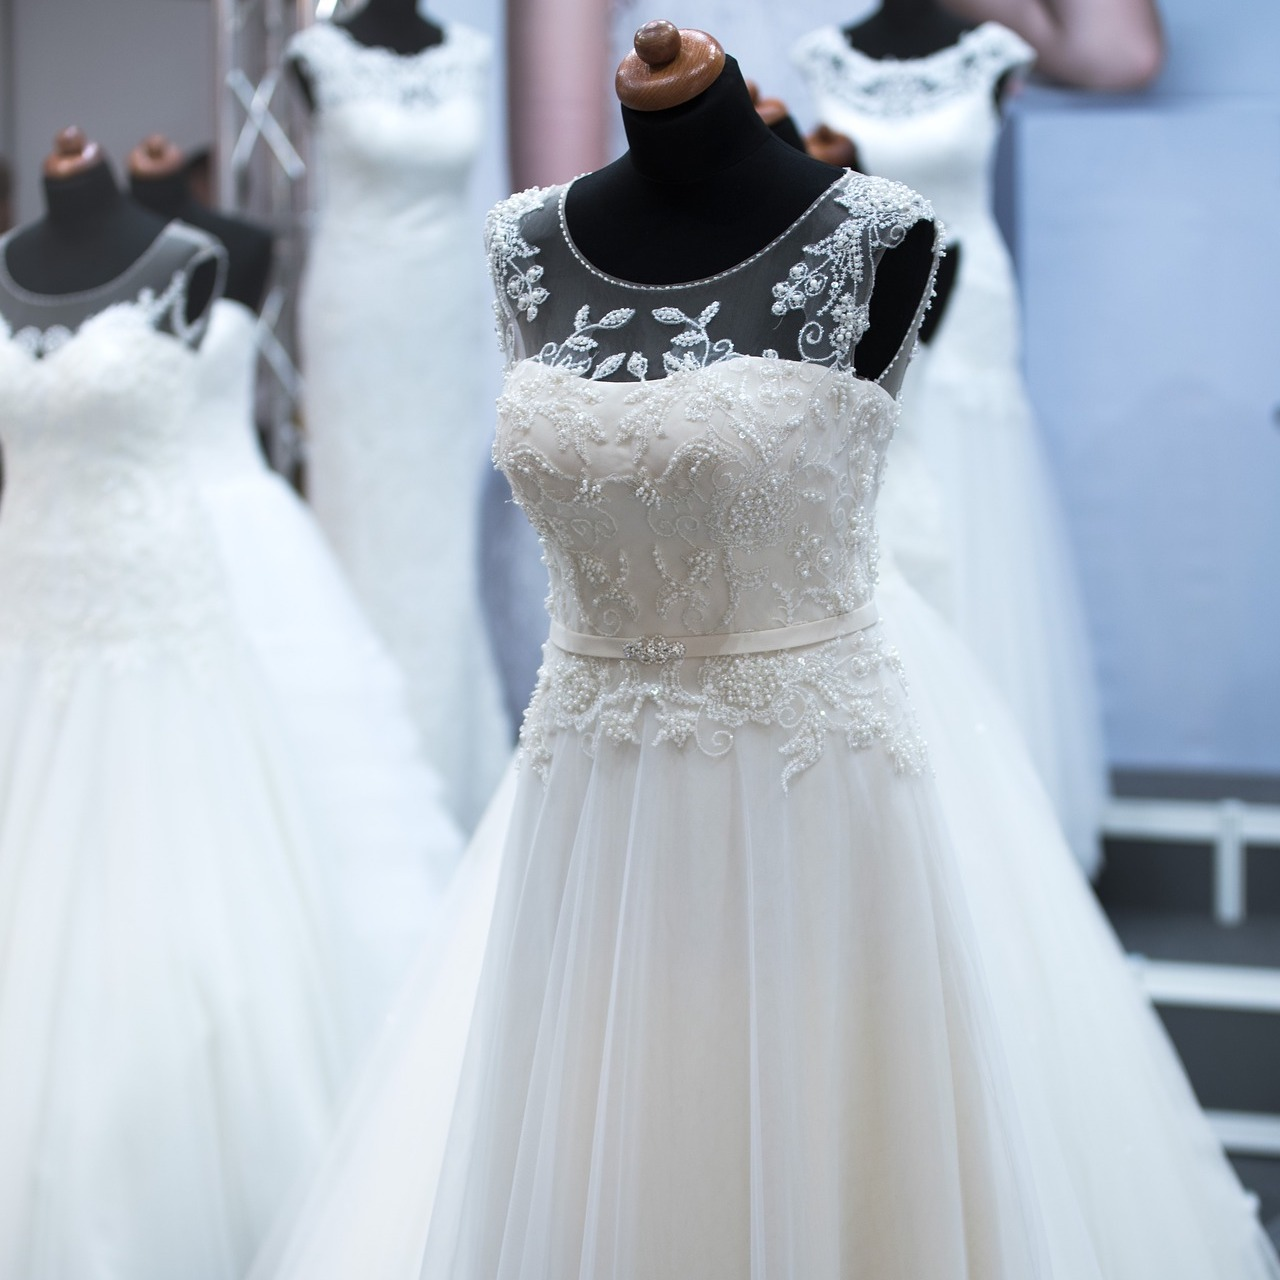 our wedding dresses uk - 9 reasons why your experience at House of Oliver will be different to other bridal stores